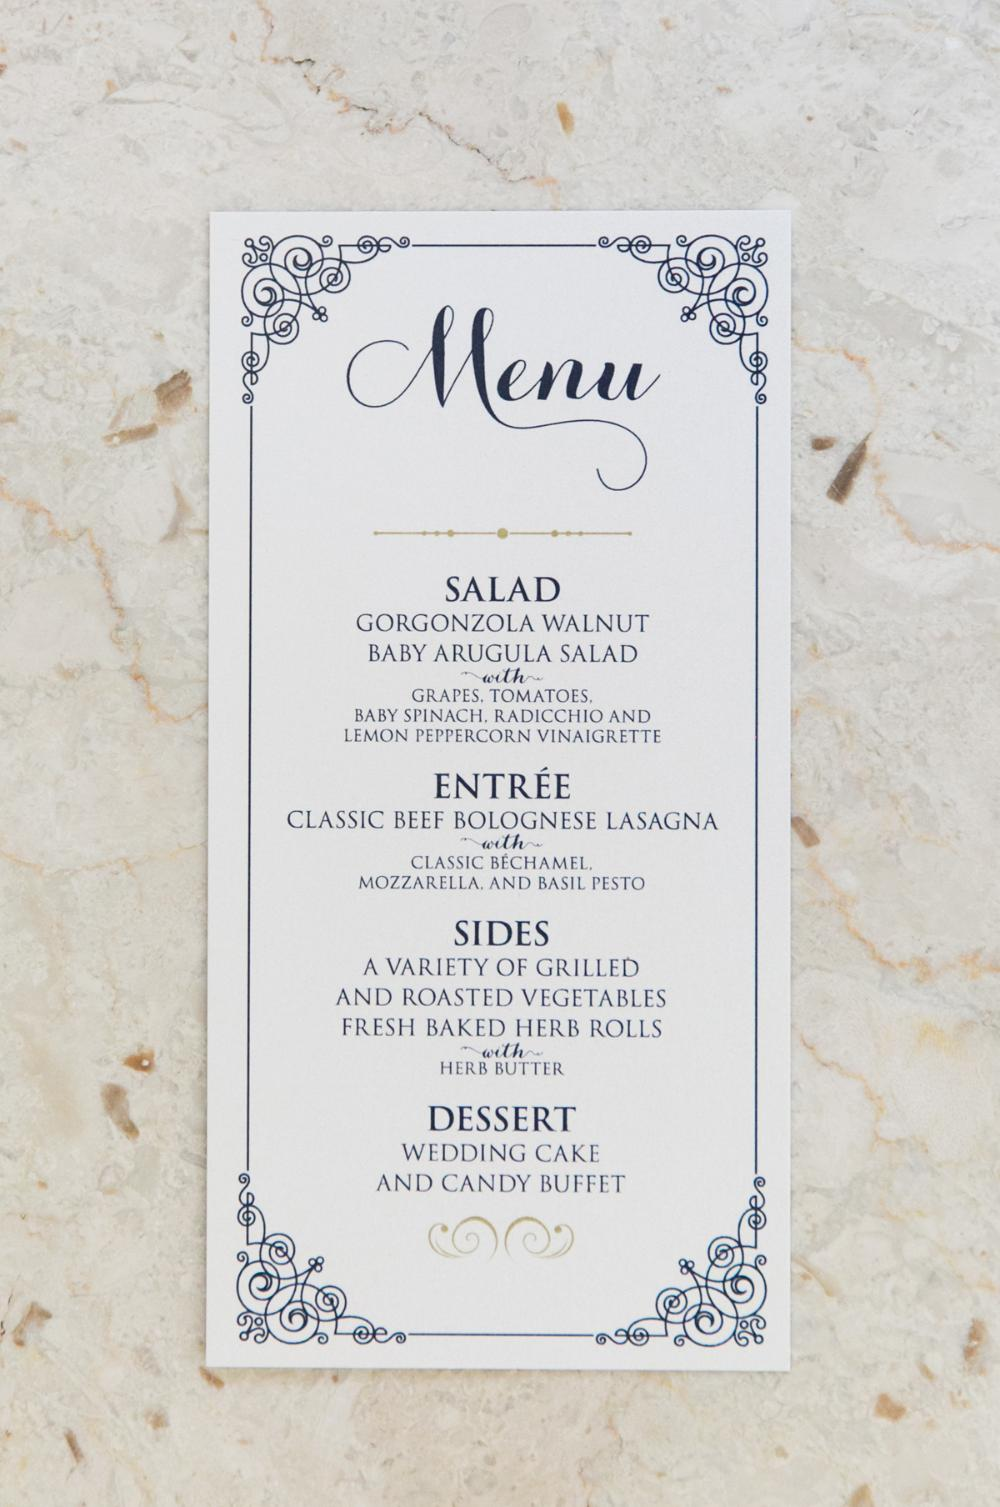 Navy Blue and Gold Formal Wedding Menu